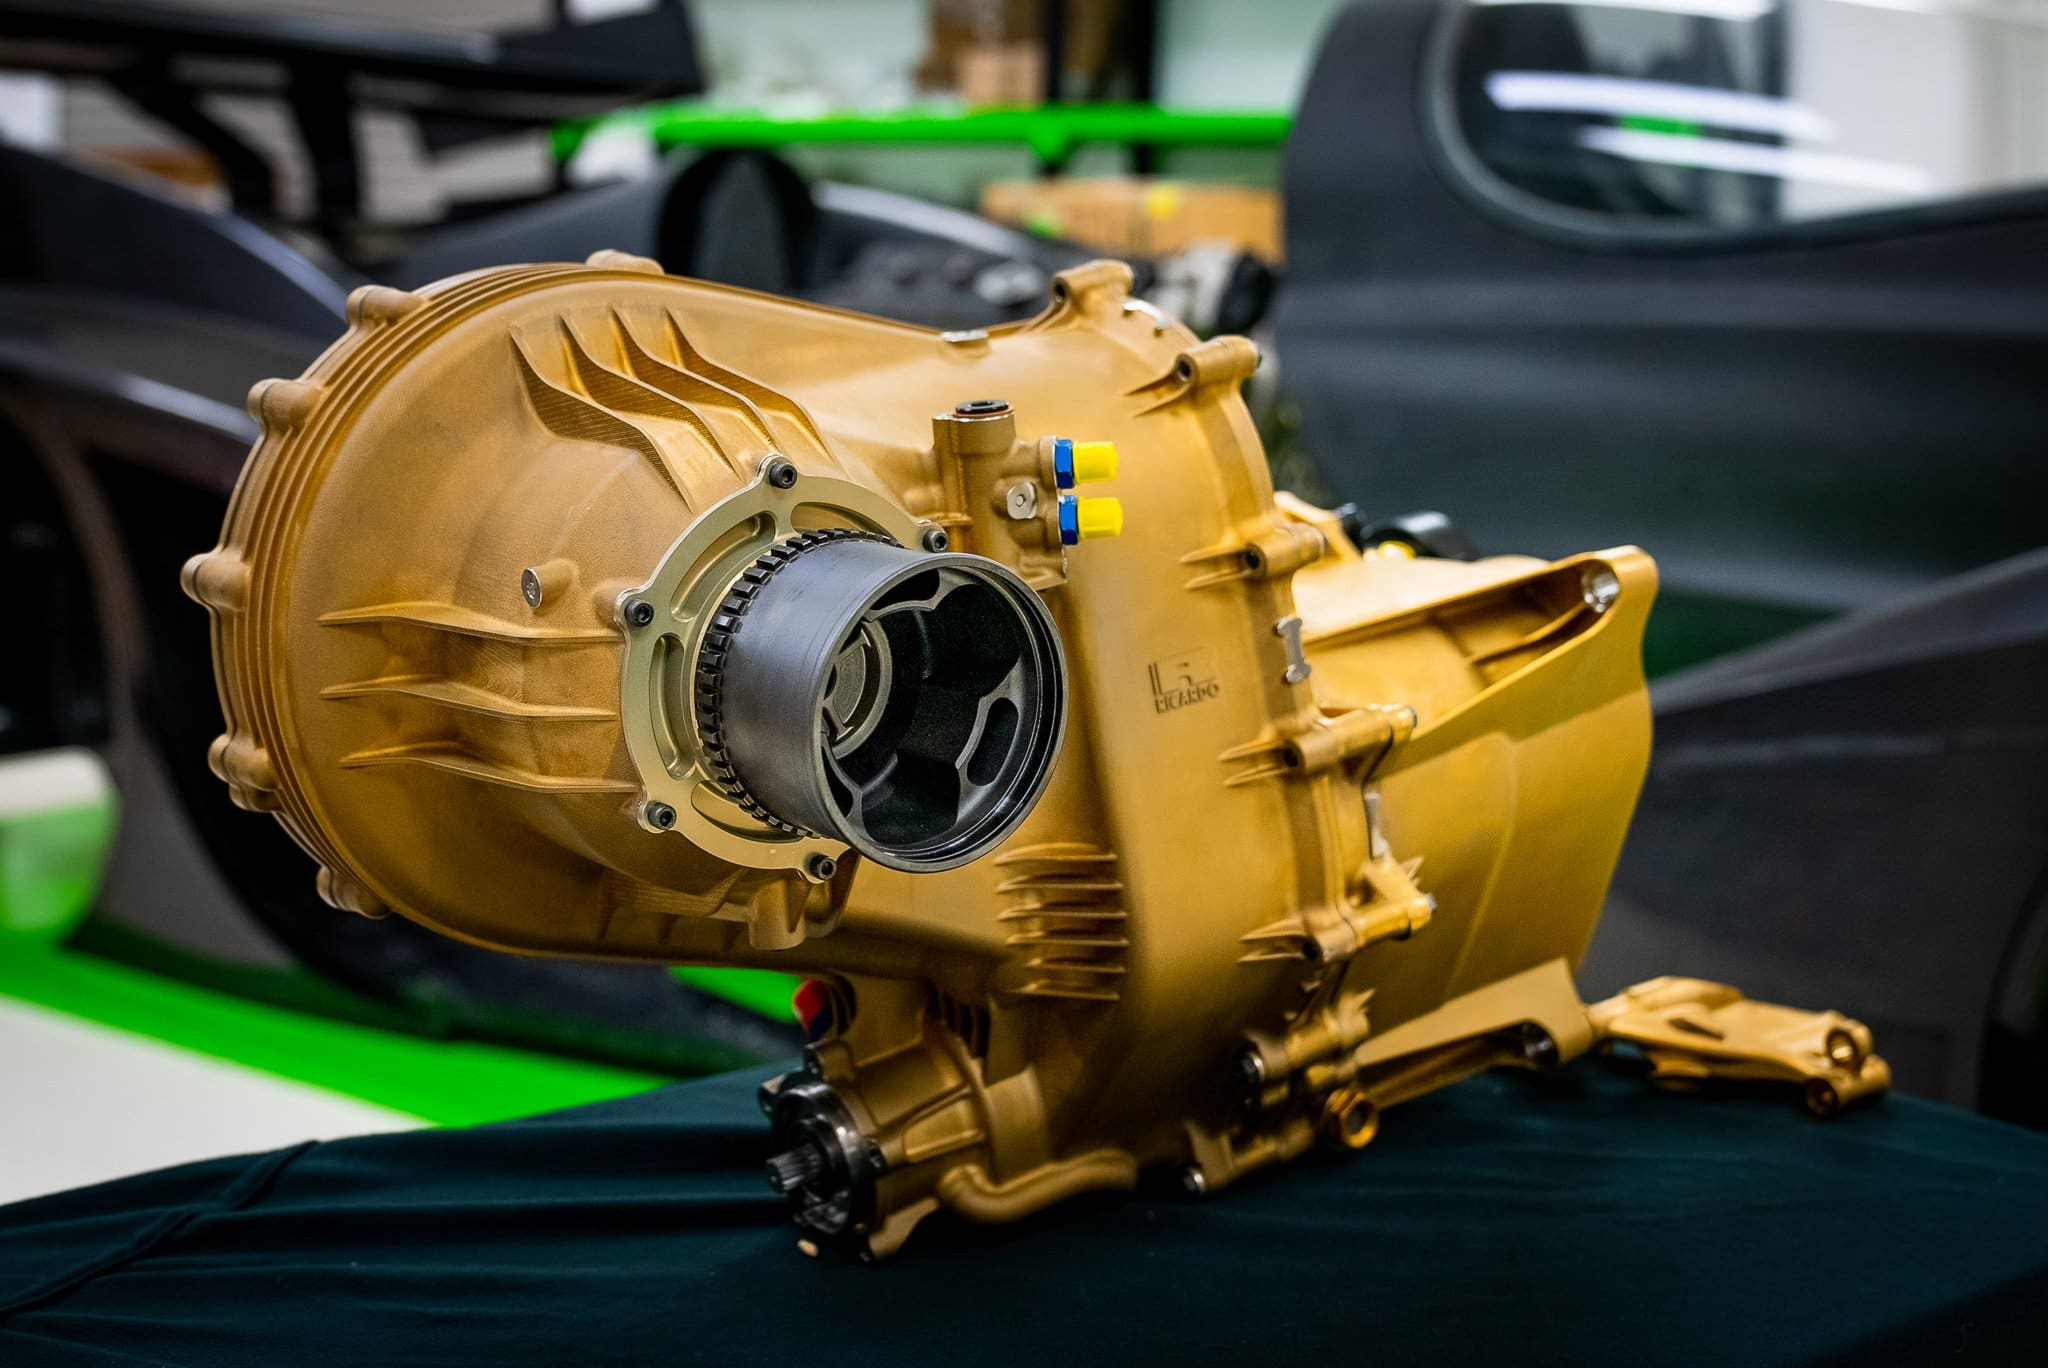 Rodin Cars manufactures 3D printed gearbox for Rodin FZero supercar